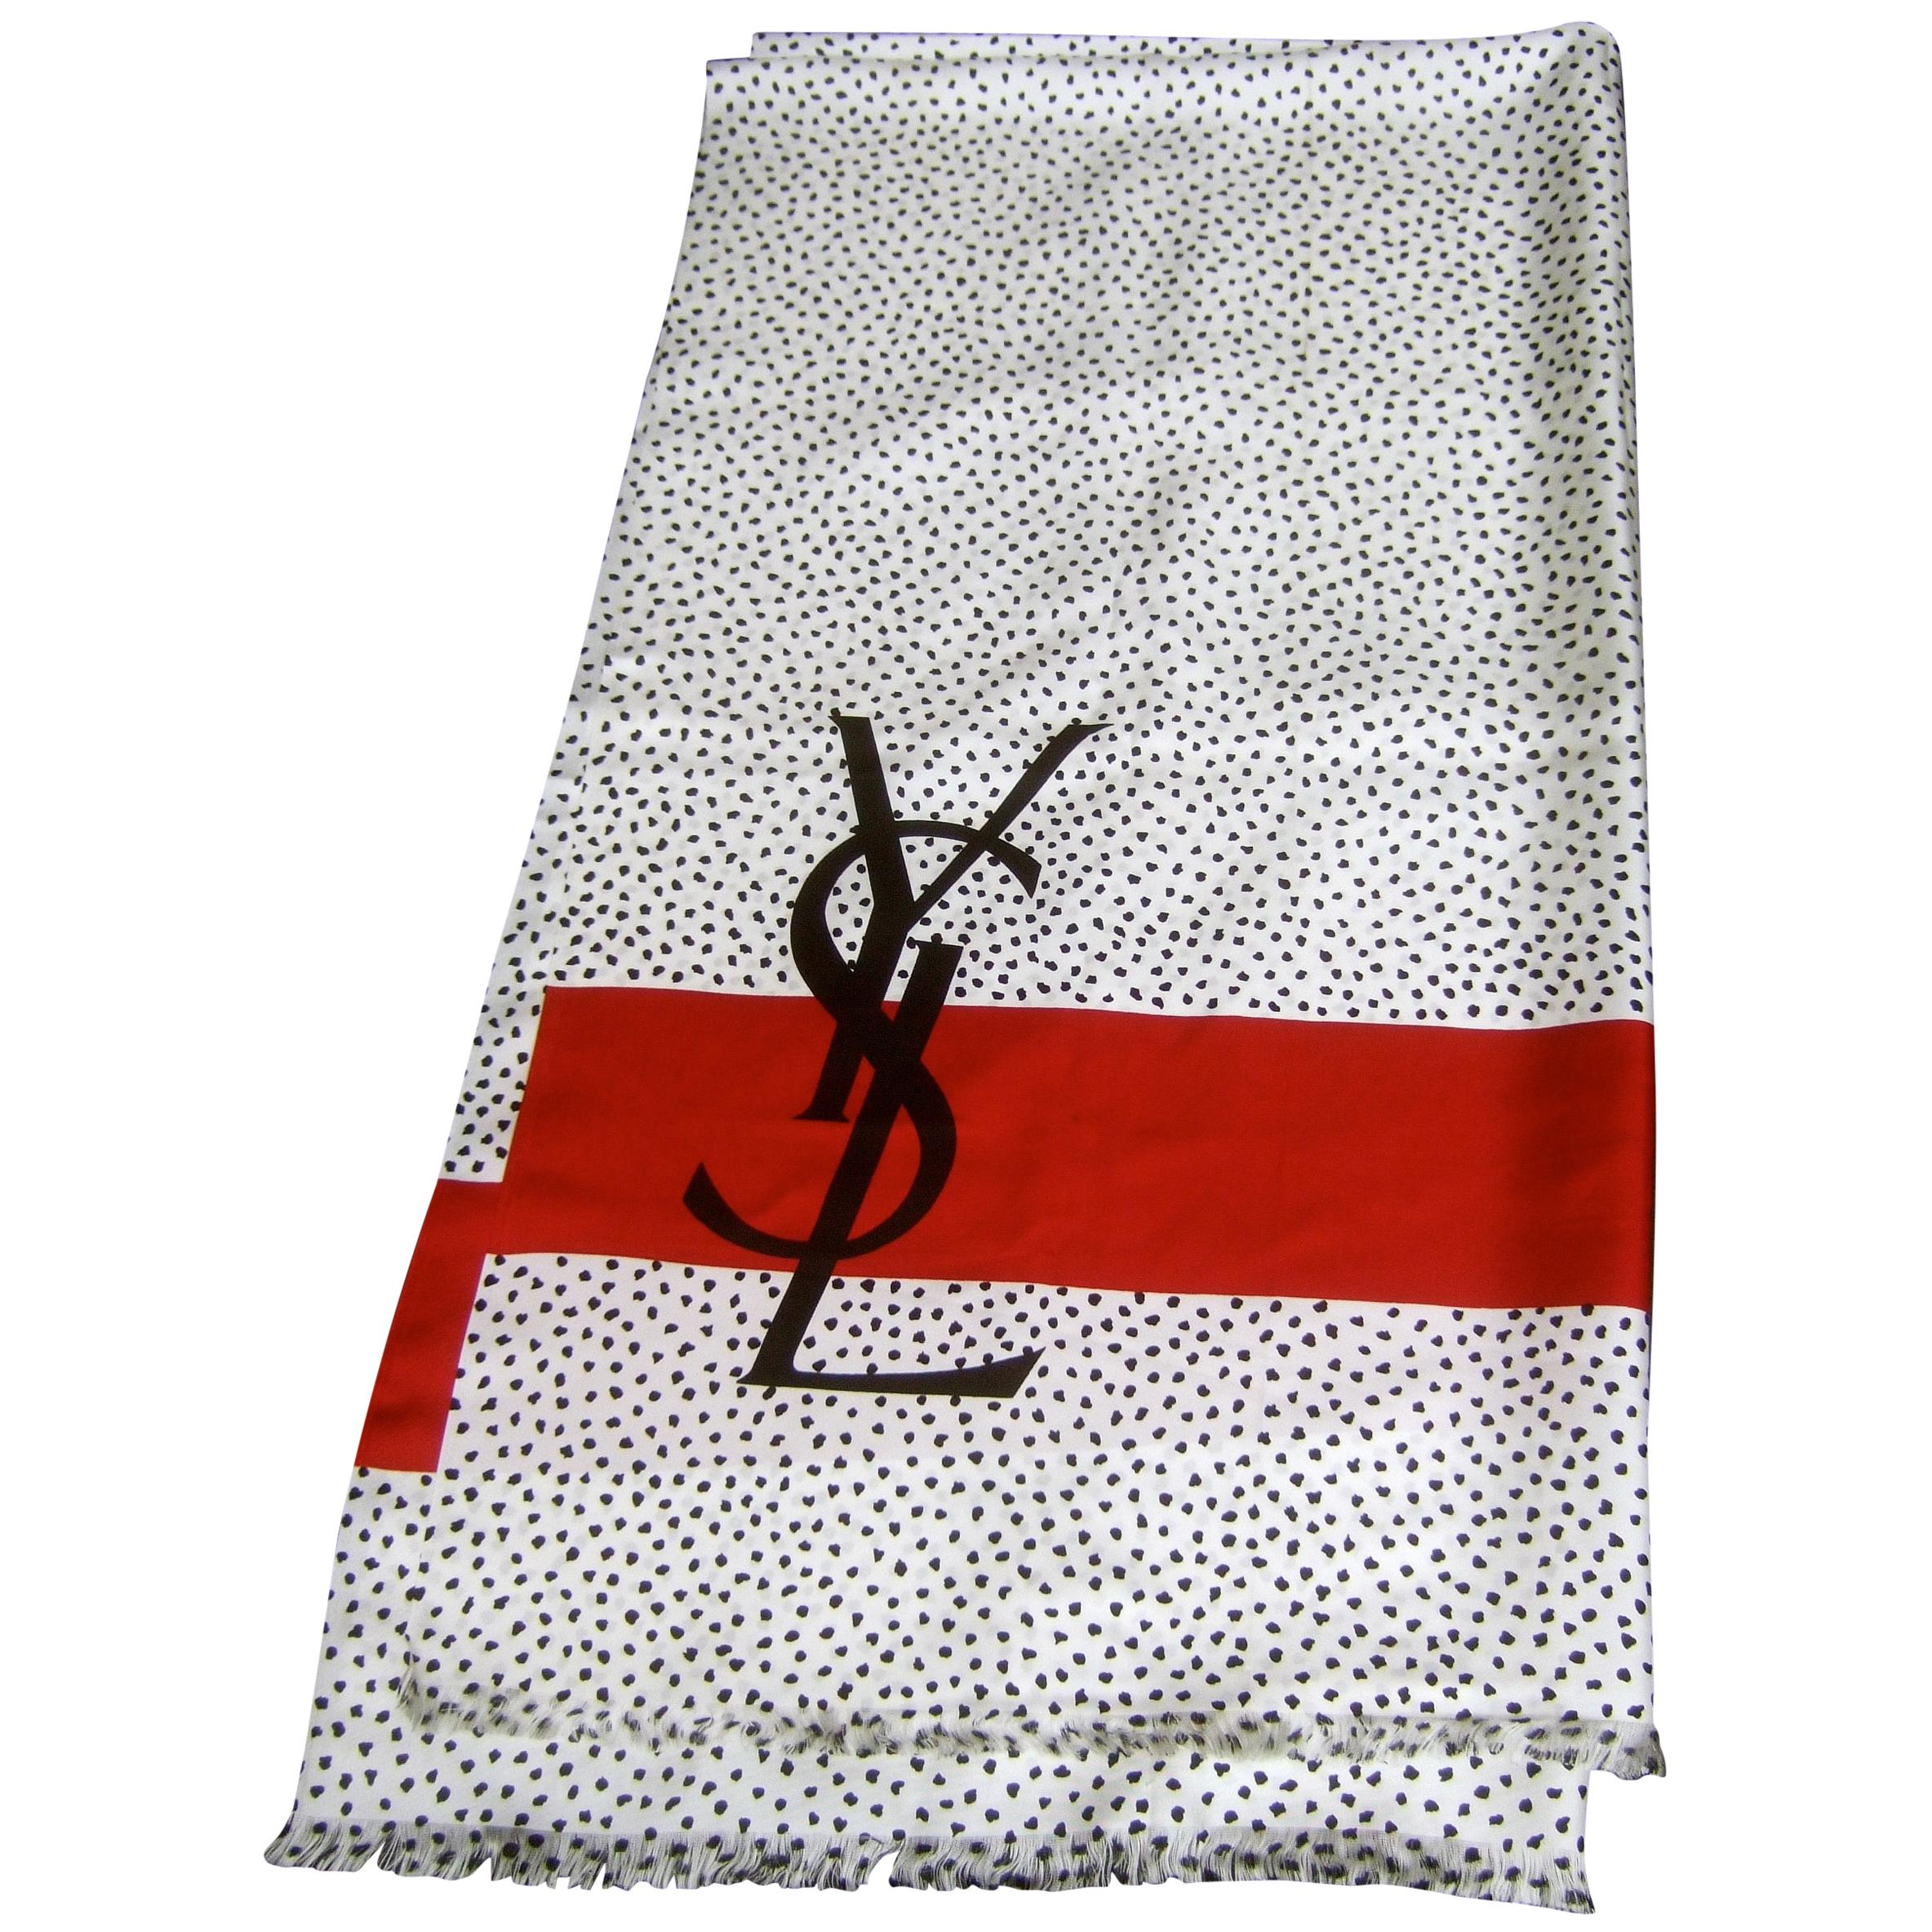 Yves Saint Laurent Large Scale Silk Shawl Scarf 69.5 x 36.5 in c 1990s